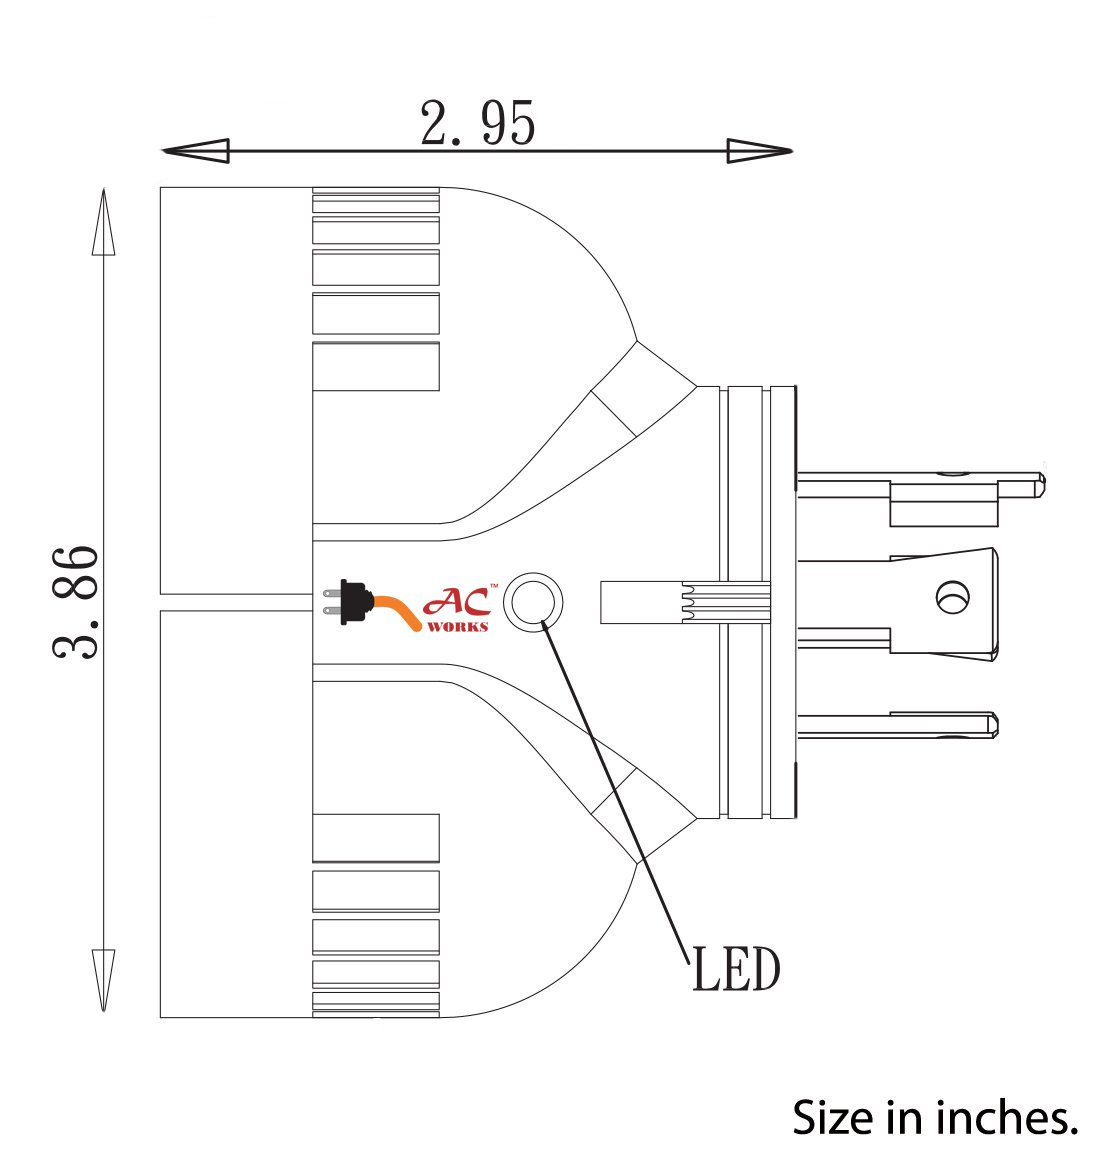 AC WORKS [ADVL1420520] Generator V-DUO Adapter NEMA L14-20P 20Amp 4-Prong Locking Plug to (2) 15/20Amp Household Connectors by AC WORKS (Image #5)